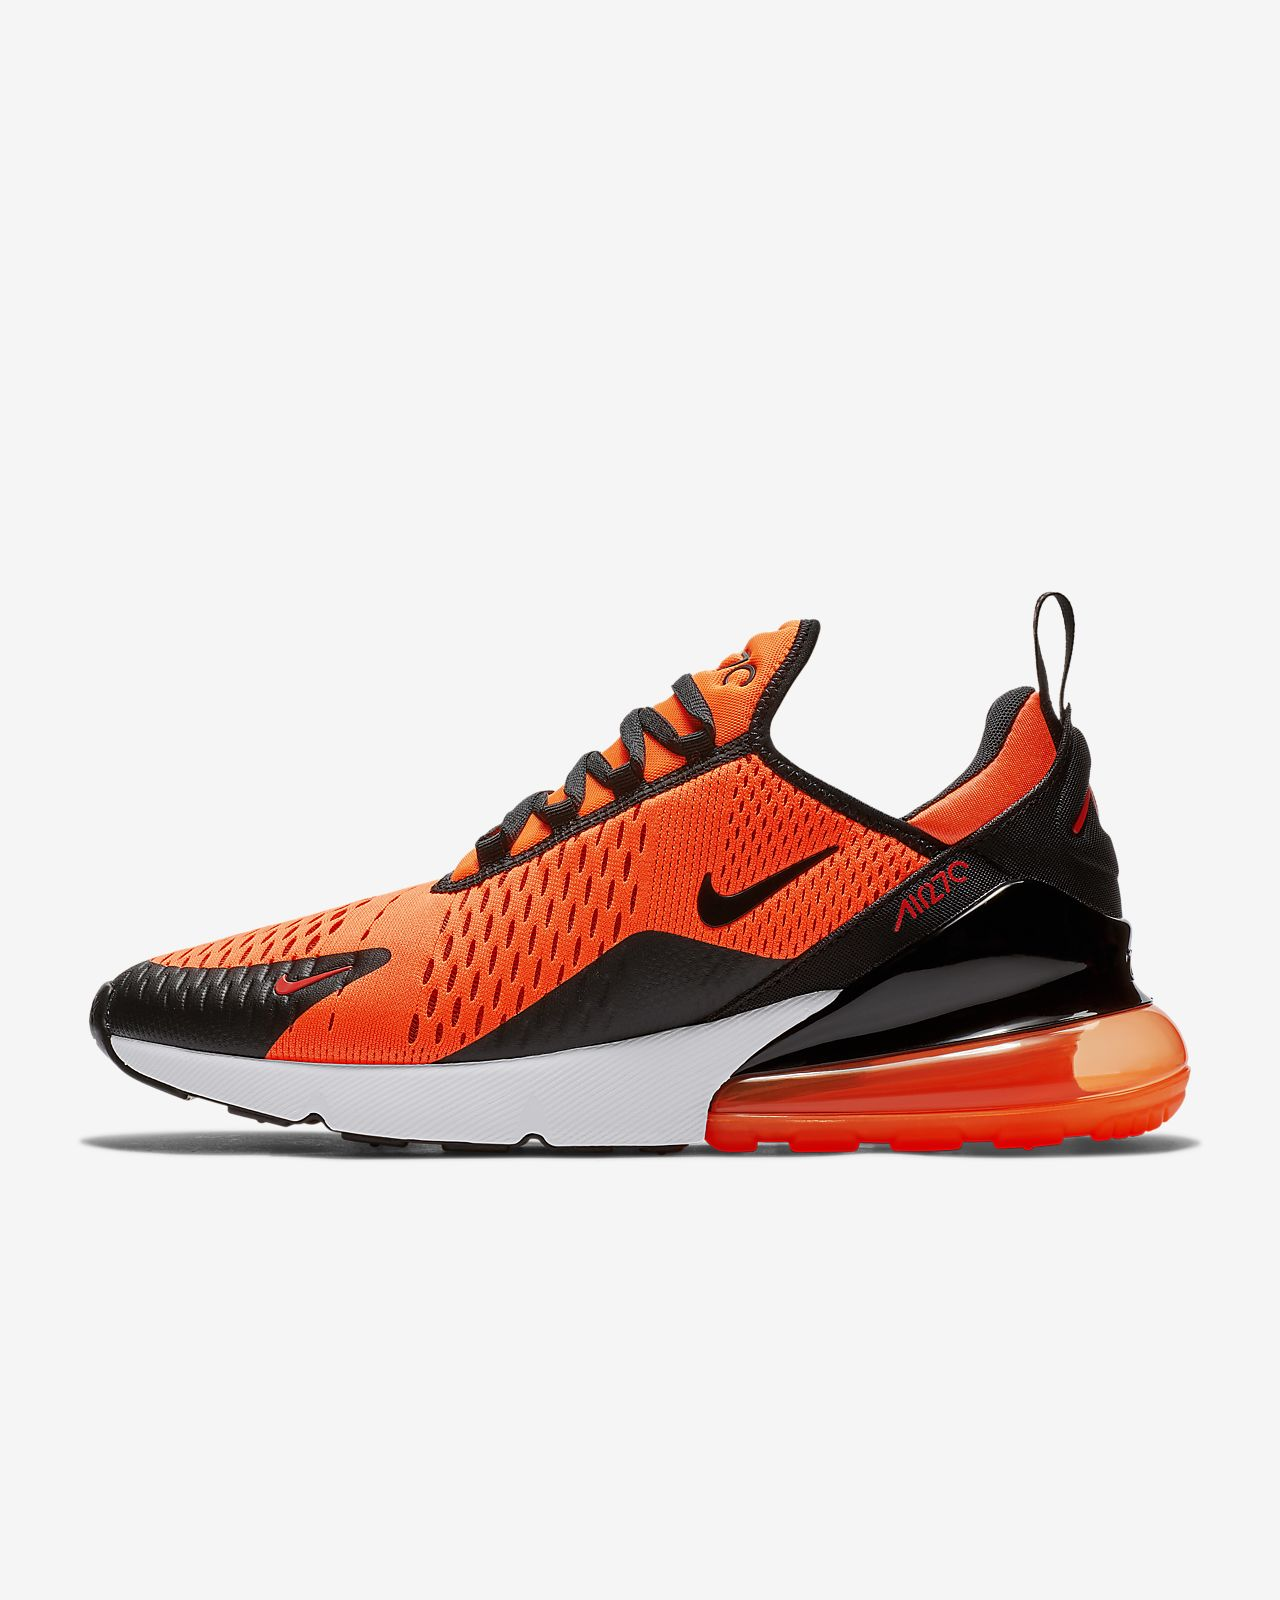 000d5089fe7 Nike Air Max 270 Men s Shoe. Nike.com GB